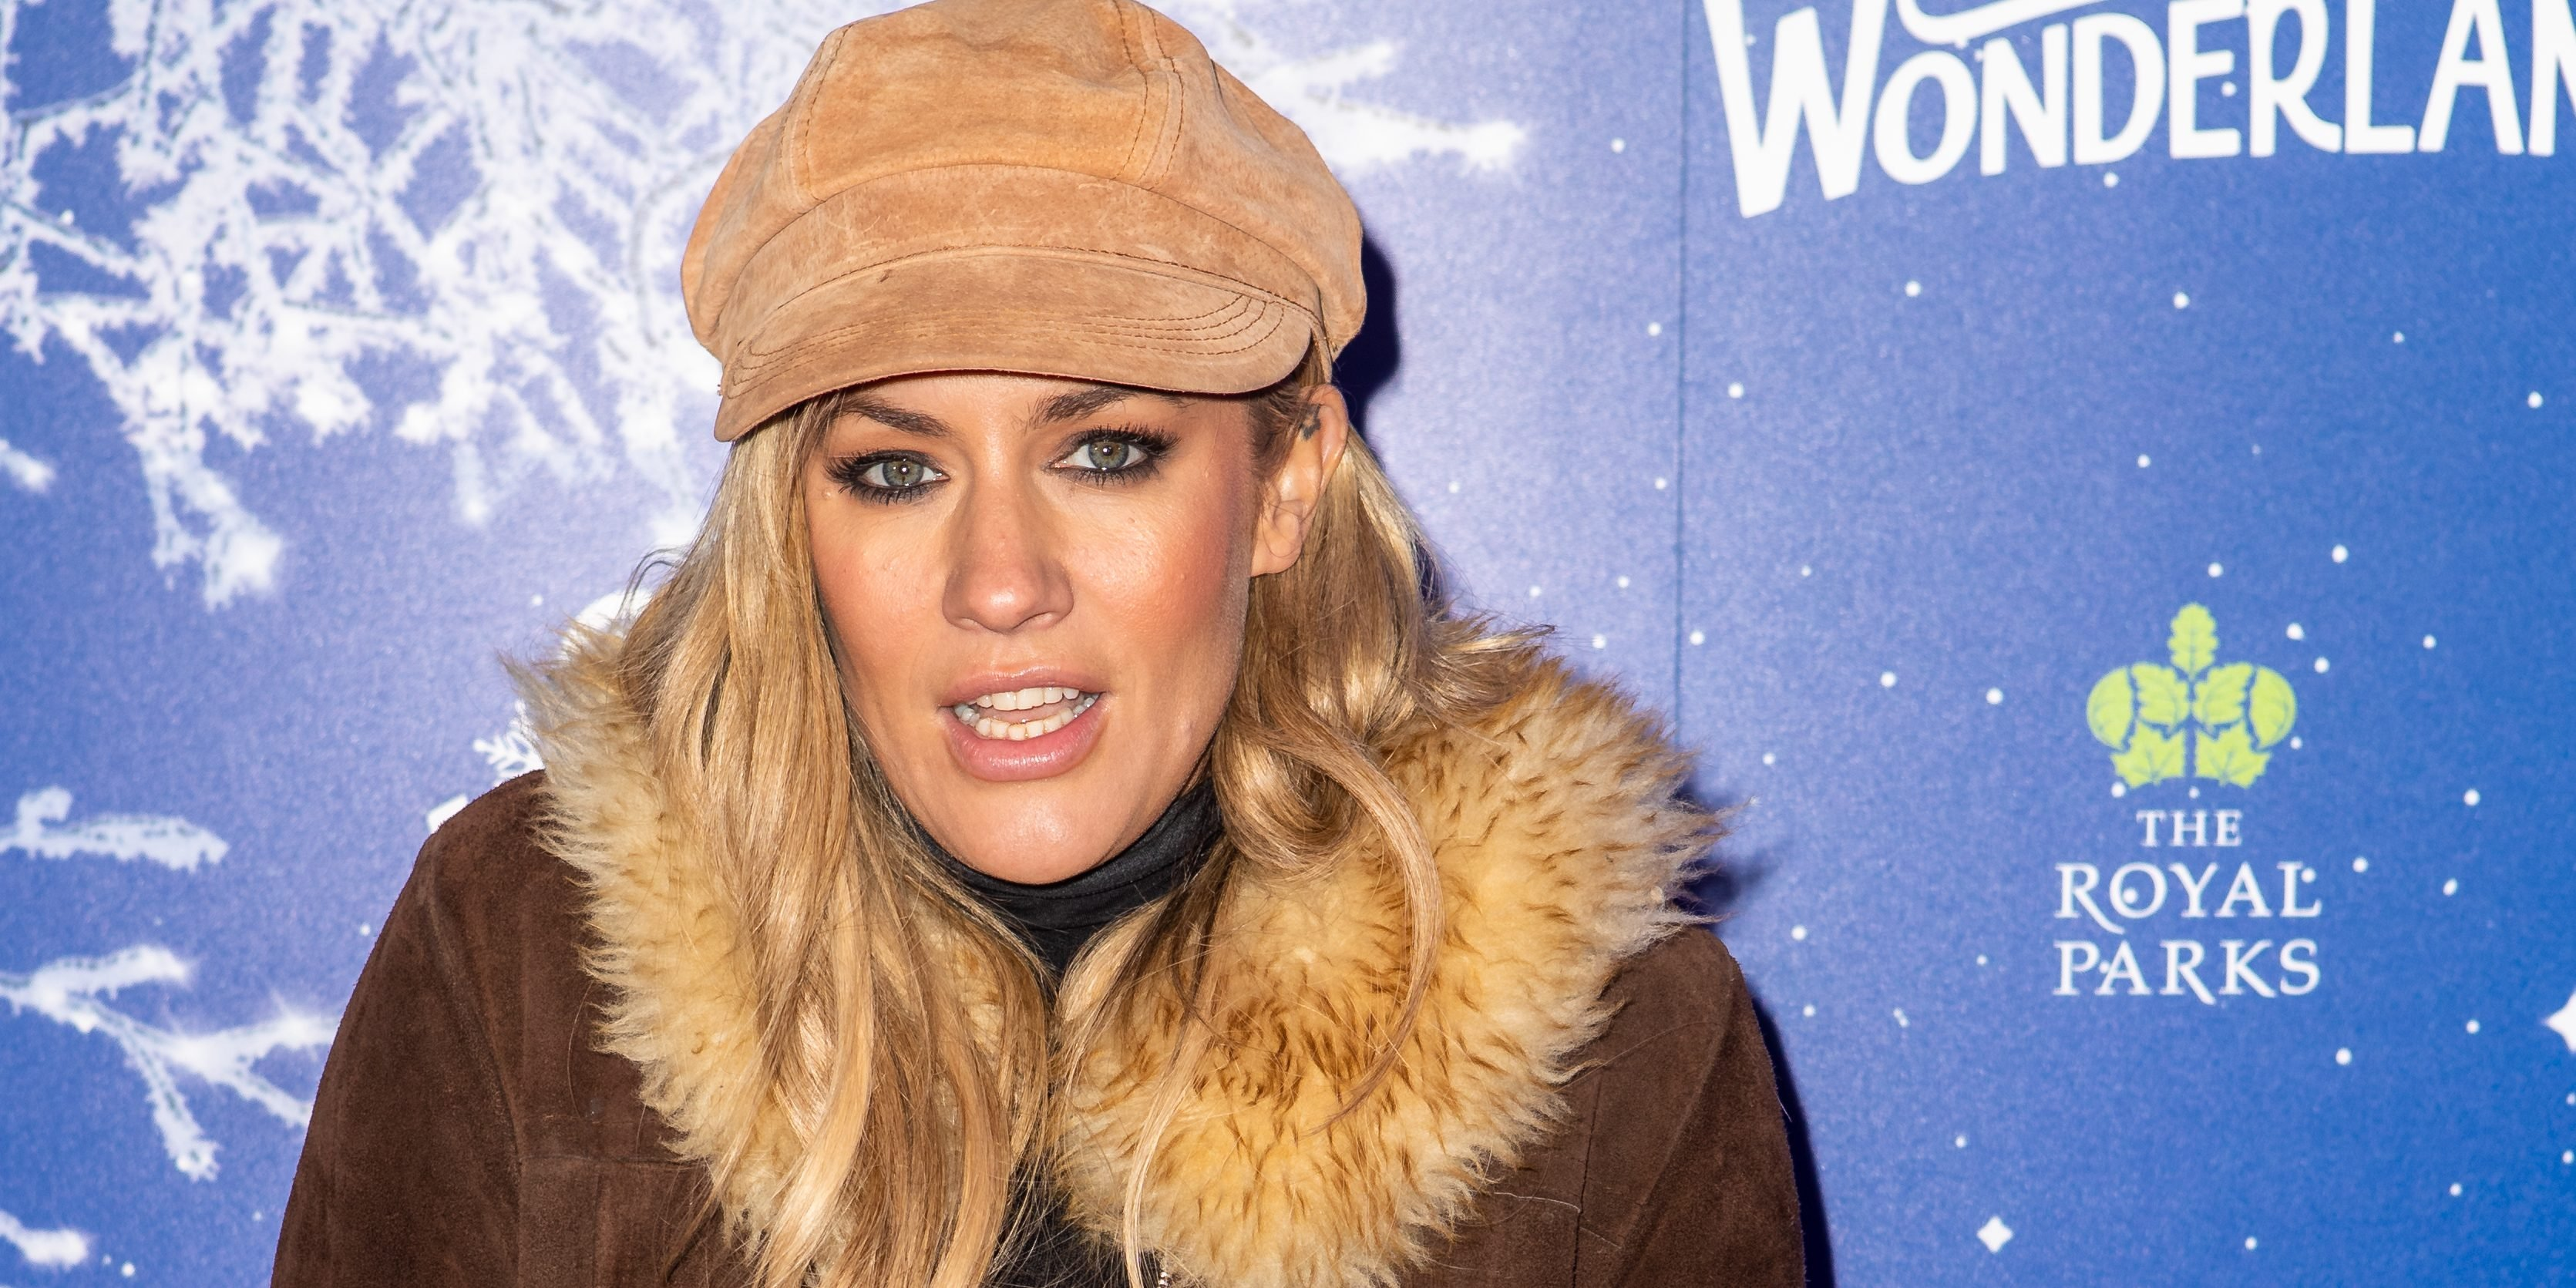 Caroline Flack is 'co-operating with police' following arrest